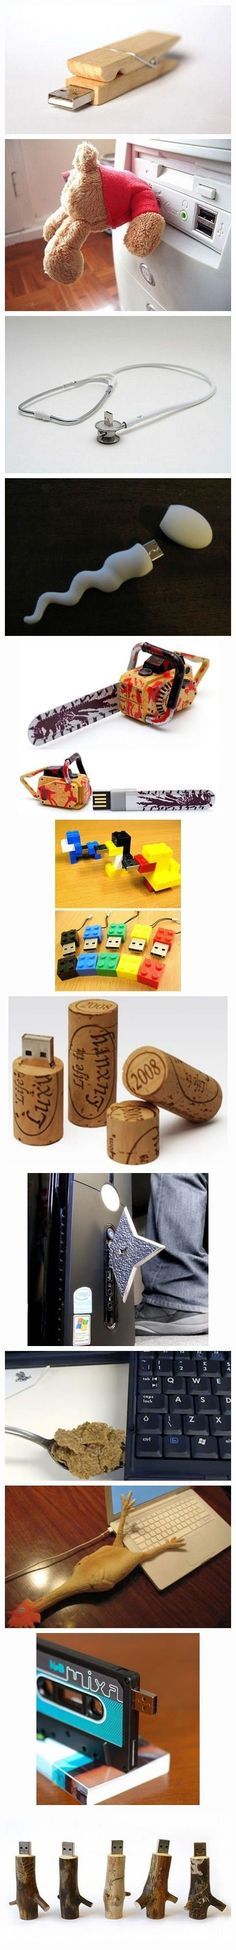 #cool Flash drives #usb / TechNews24h.com